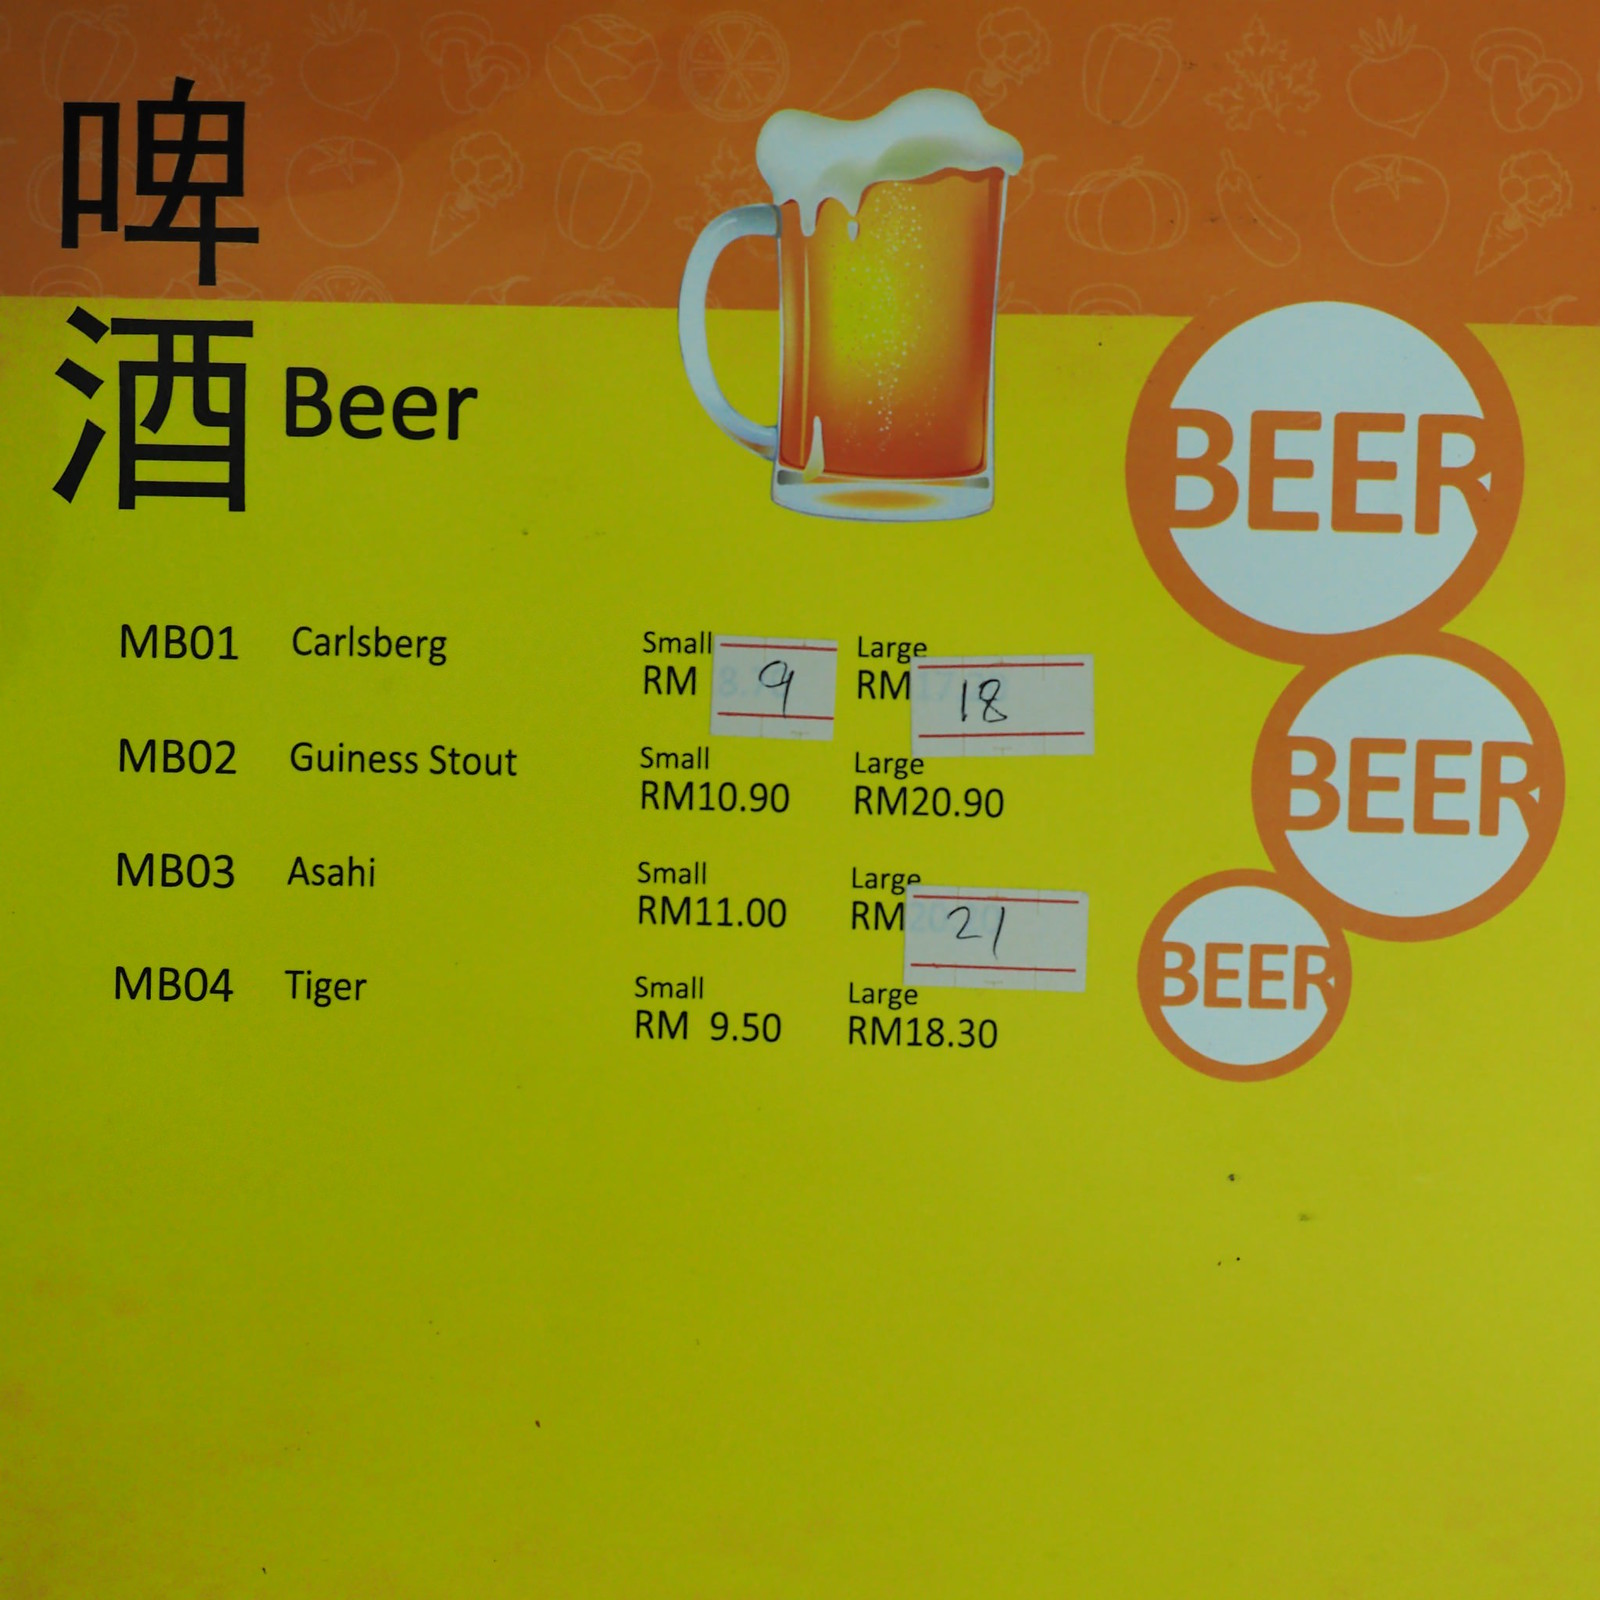 Beer menu from Pangkor Village Seafood, Taman Megah